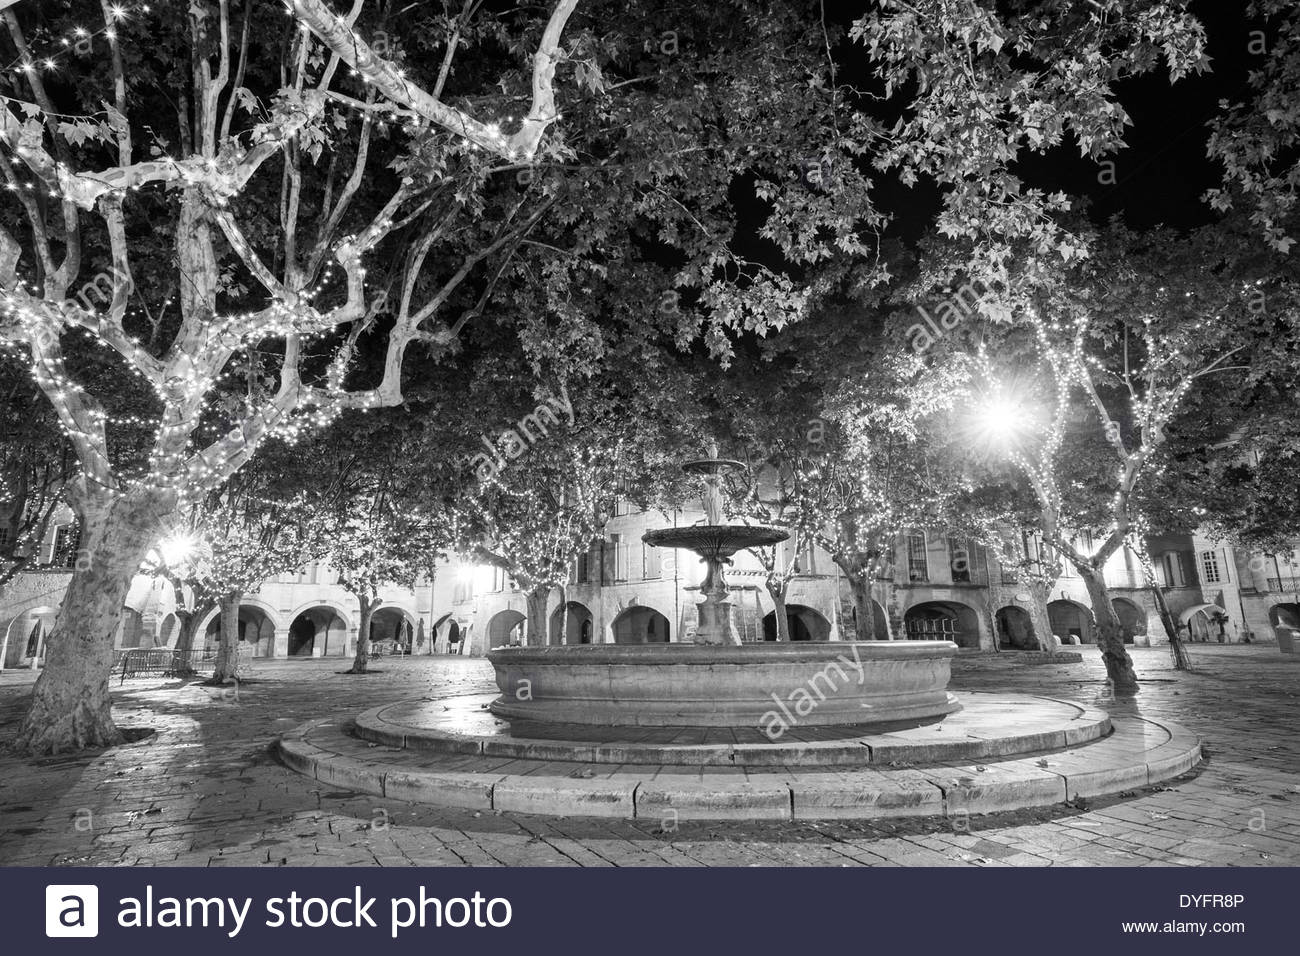 Fountain and lights on Place aux Herbes at night, Uzès, Gard Department, Languedoc-Roussillon, France - Stock Image